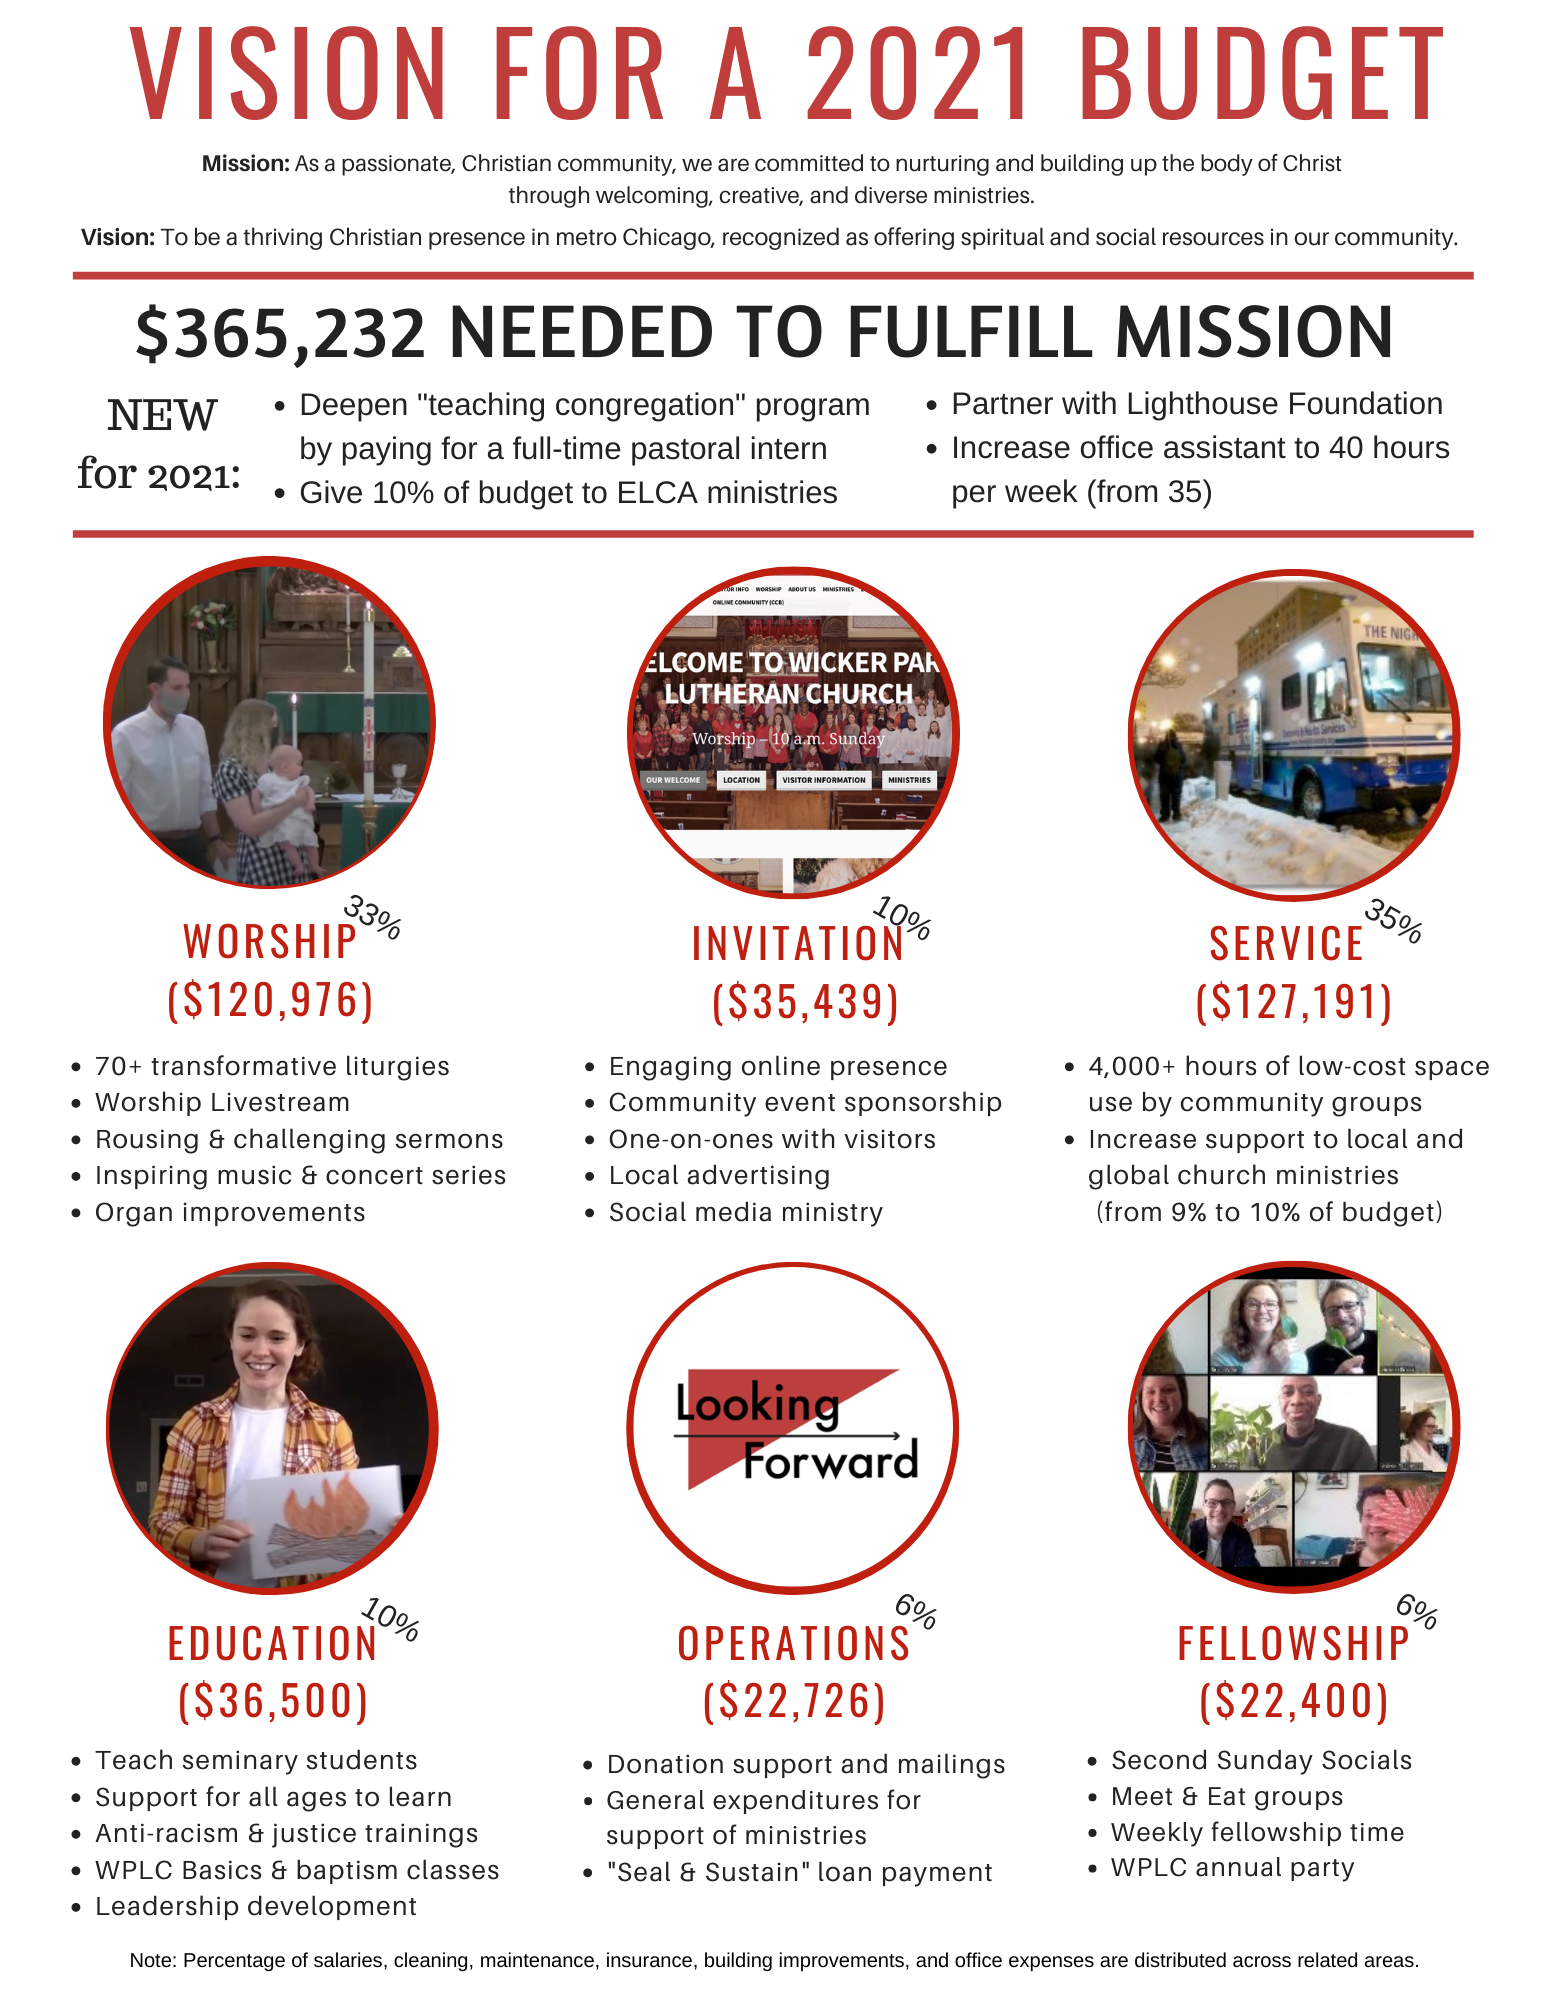 A graphic describing the $365,232 needed to engage in ministry in 2021 broken into the six major ministry categories–worship, invitation, service, education, operations, and fellowship.